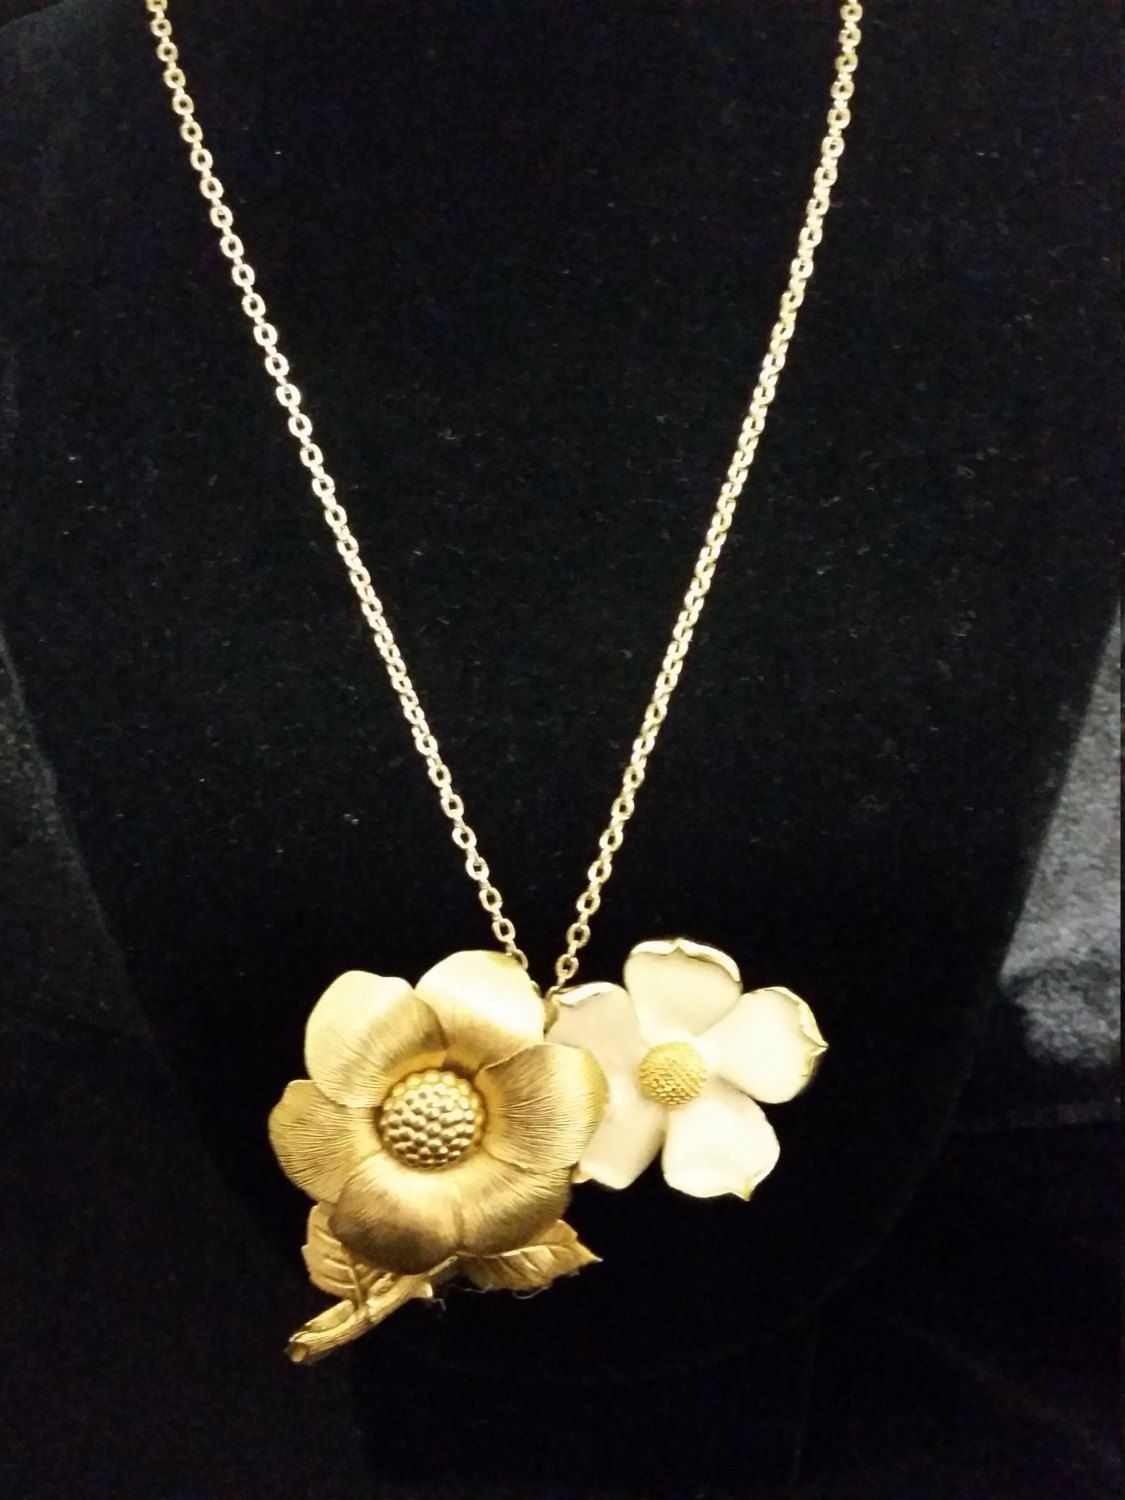 Timeless Classic Upcycled Repurposed Vintage Flower Brooch Necklace by VaccarosVtgJewelry on Etsy